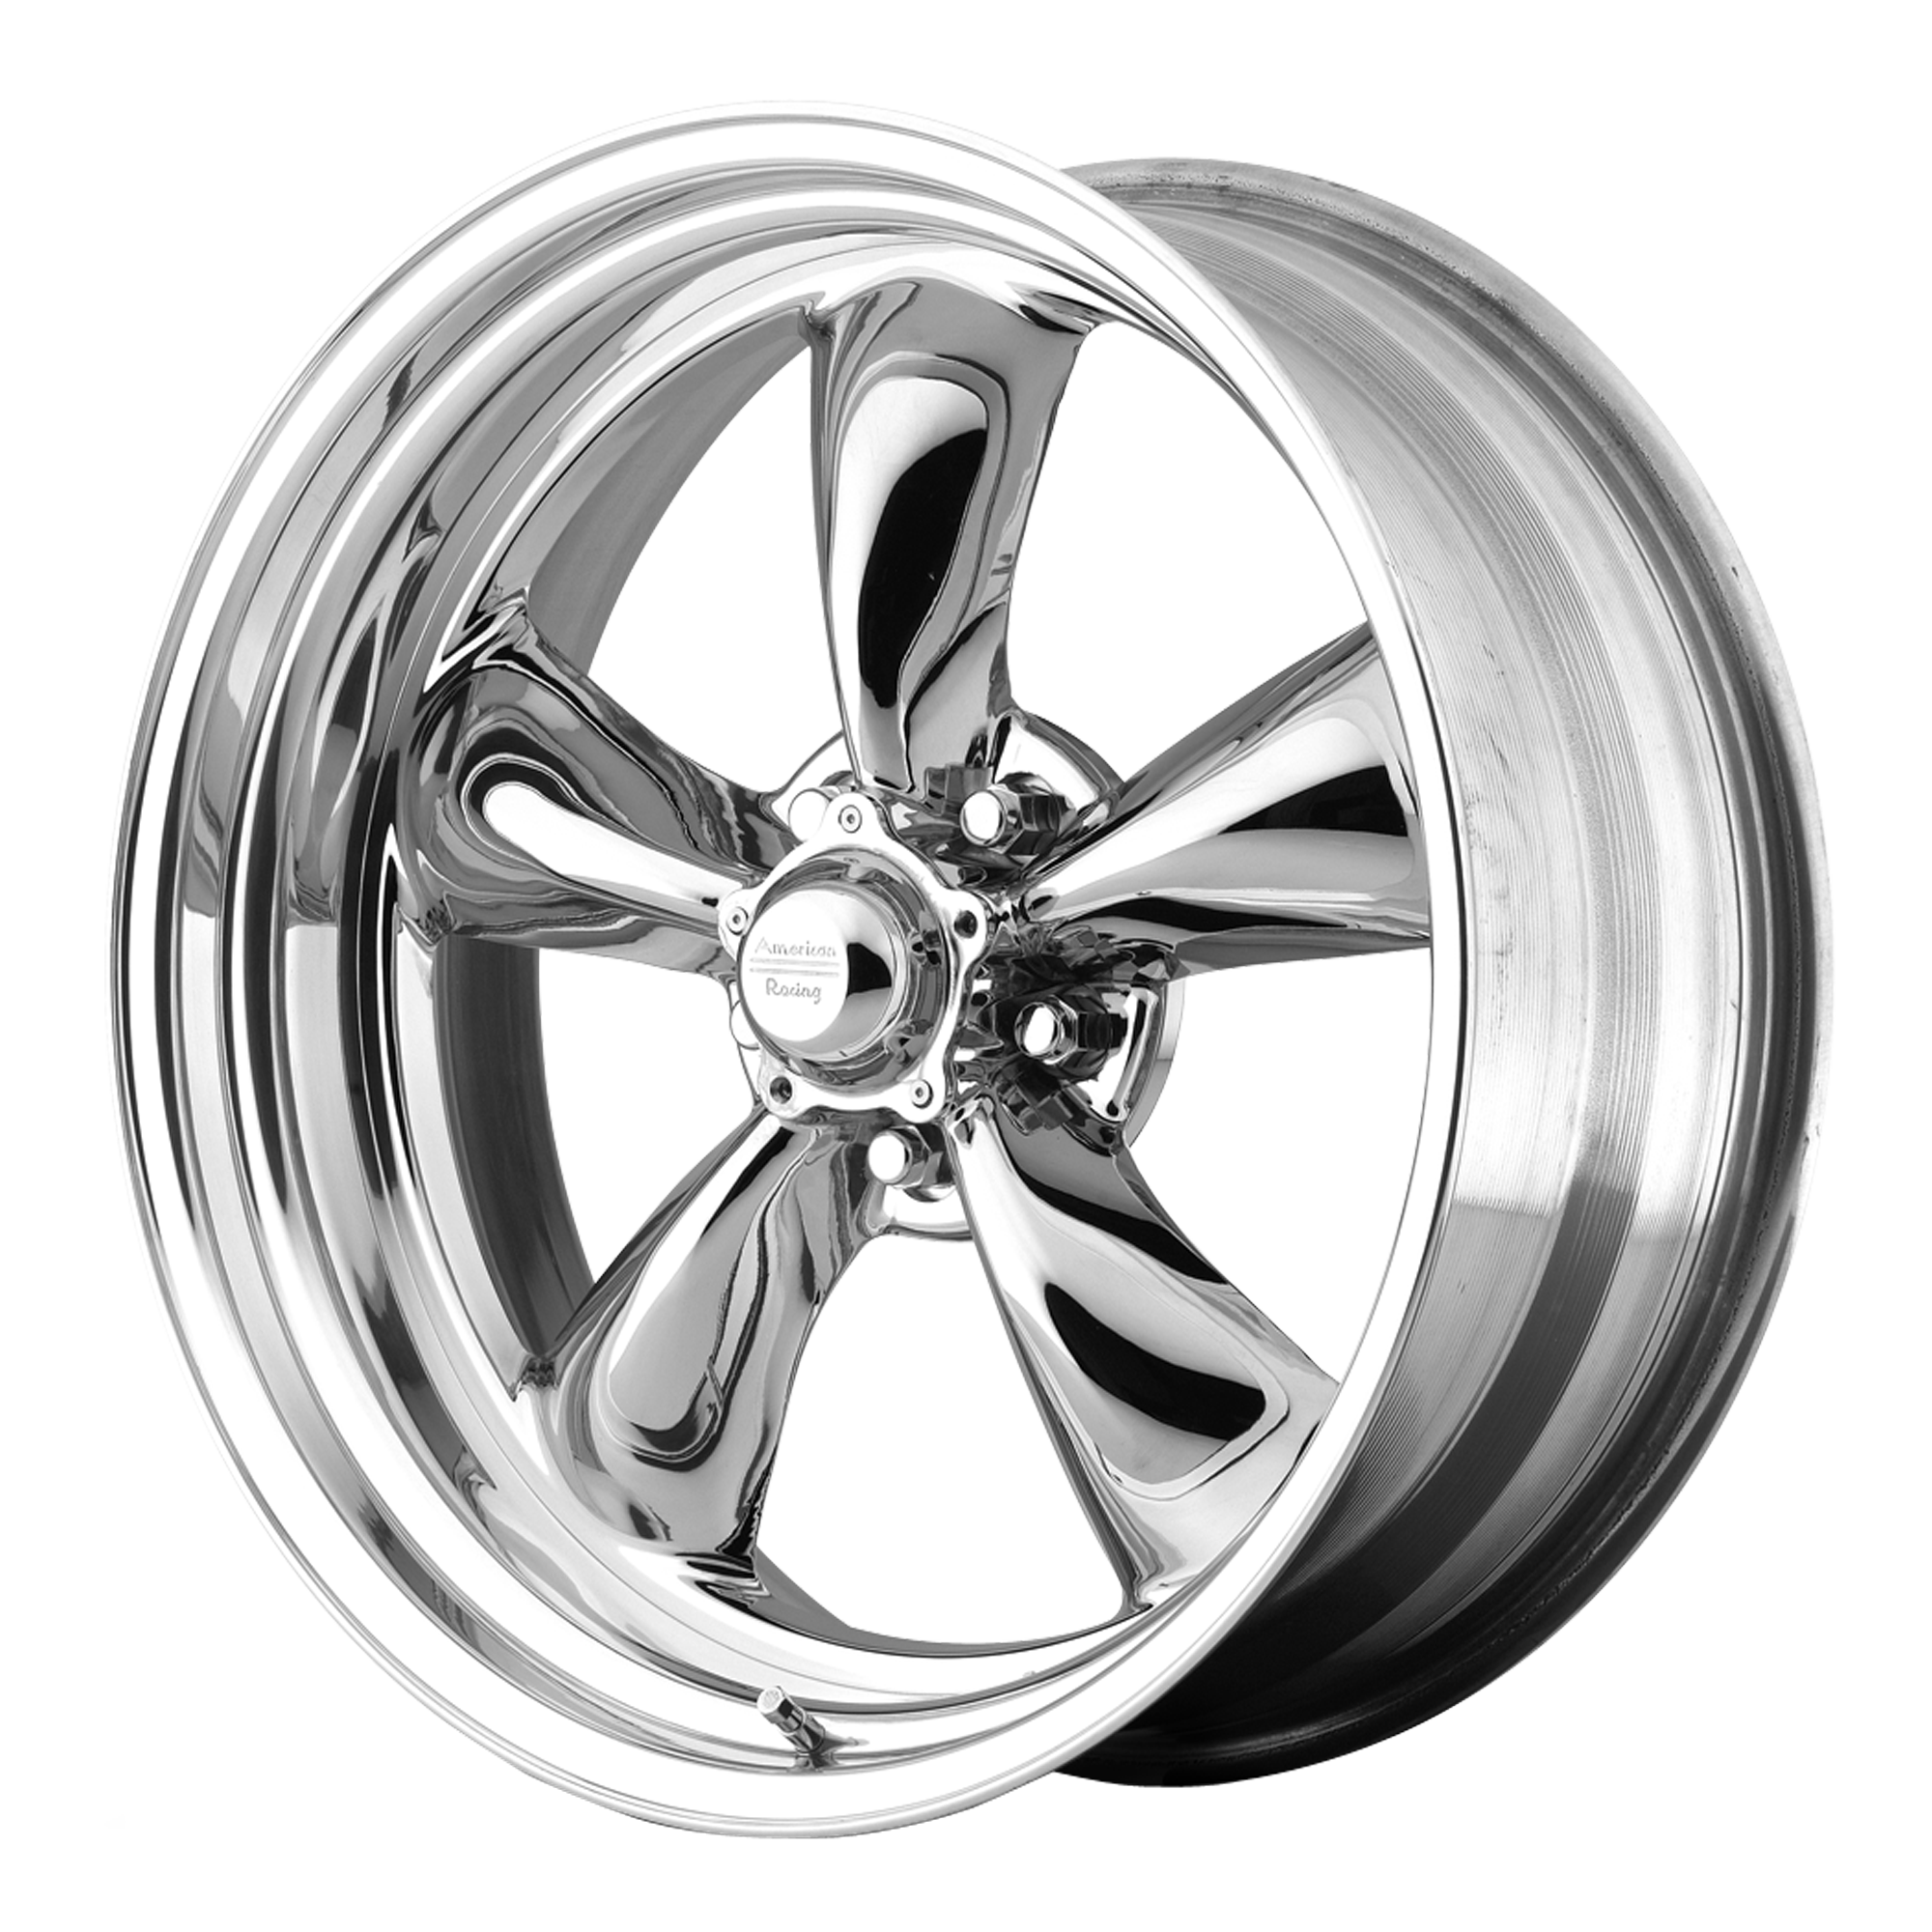 American Racing Wheels VN815 TORQ THRUST II 1 PC Chrome